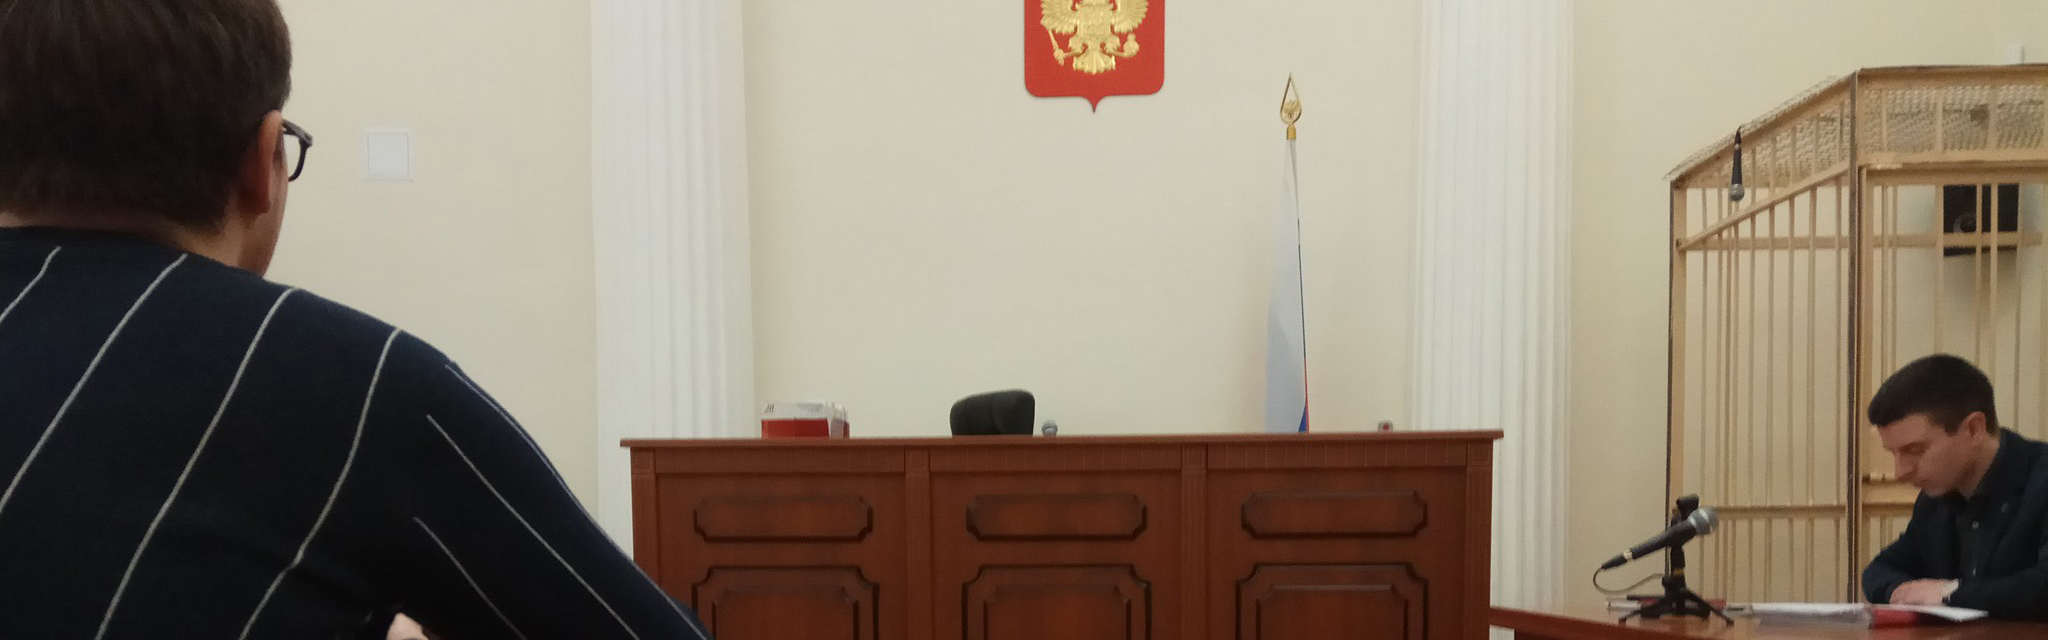 Leningrad region court, 23.03.2017